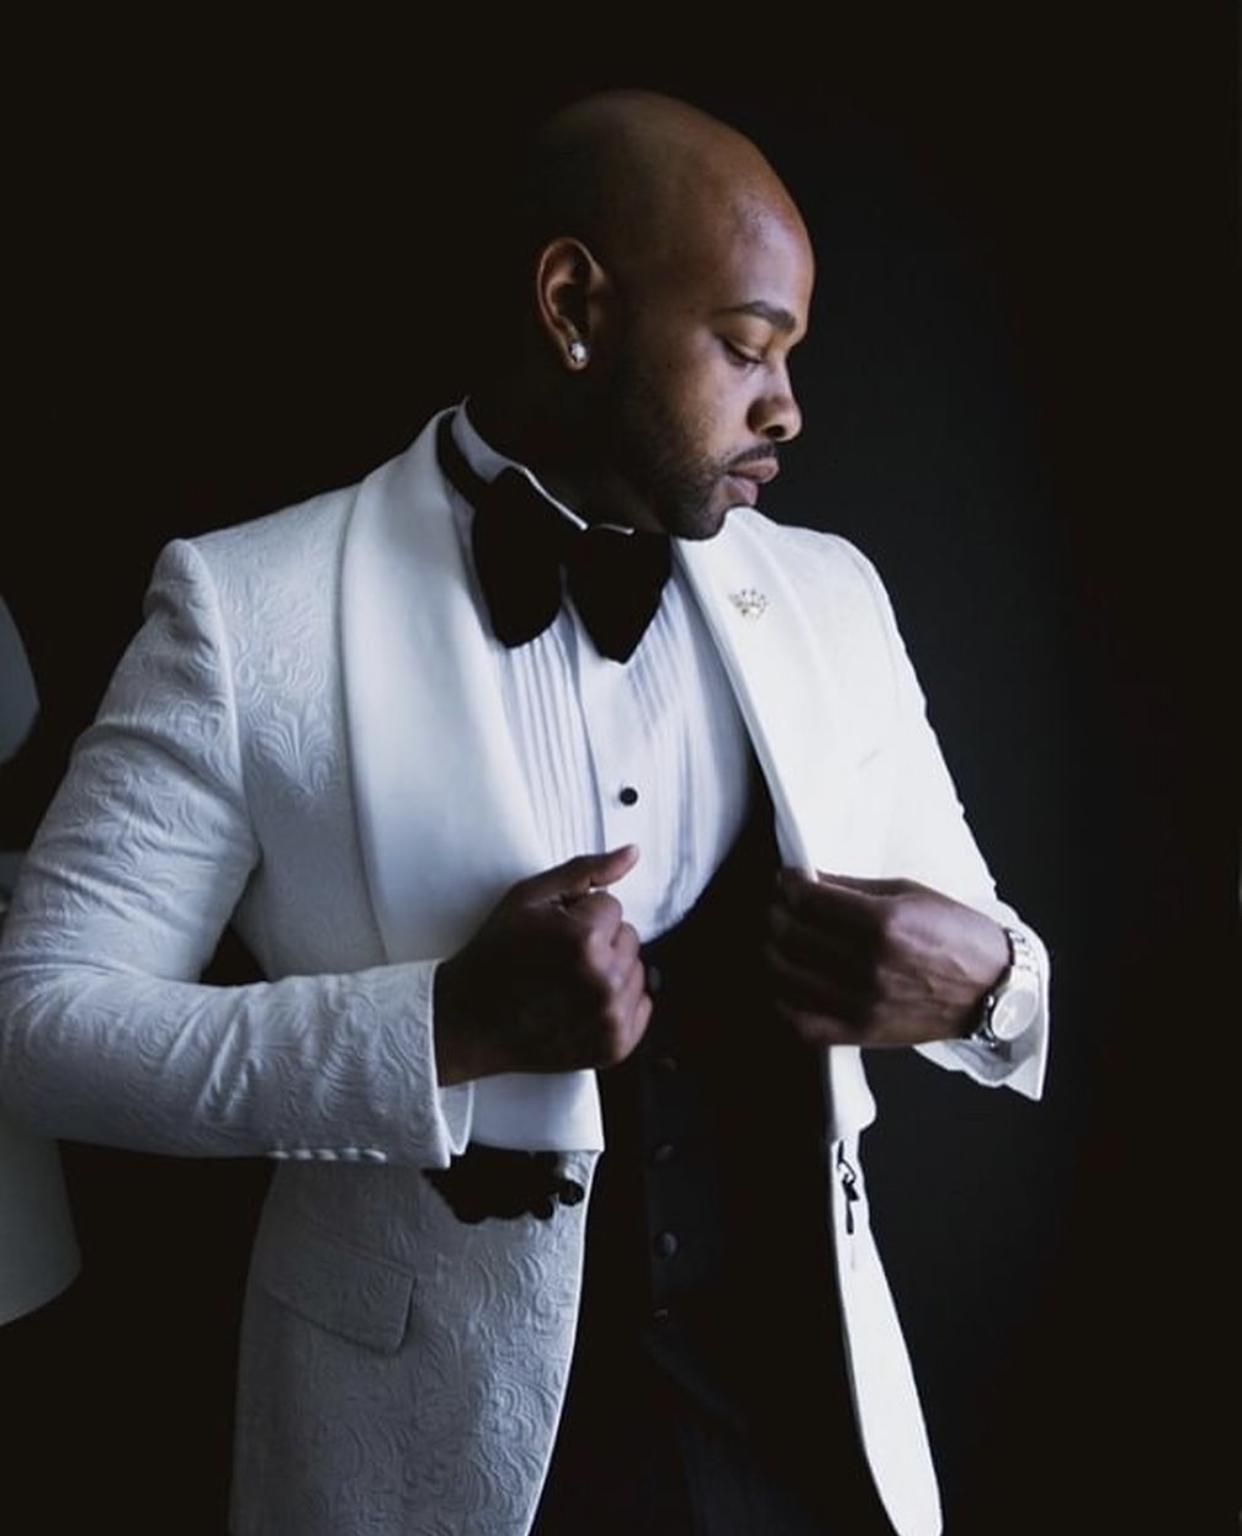 Elegant Wedding Tuxedos Groom Suits 2021 Vintage Designs Tailor Made Mens Suits White Jacquard Tuxedo Jacket Only Prom Suits For Men